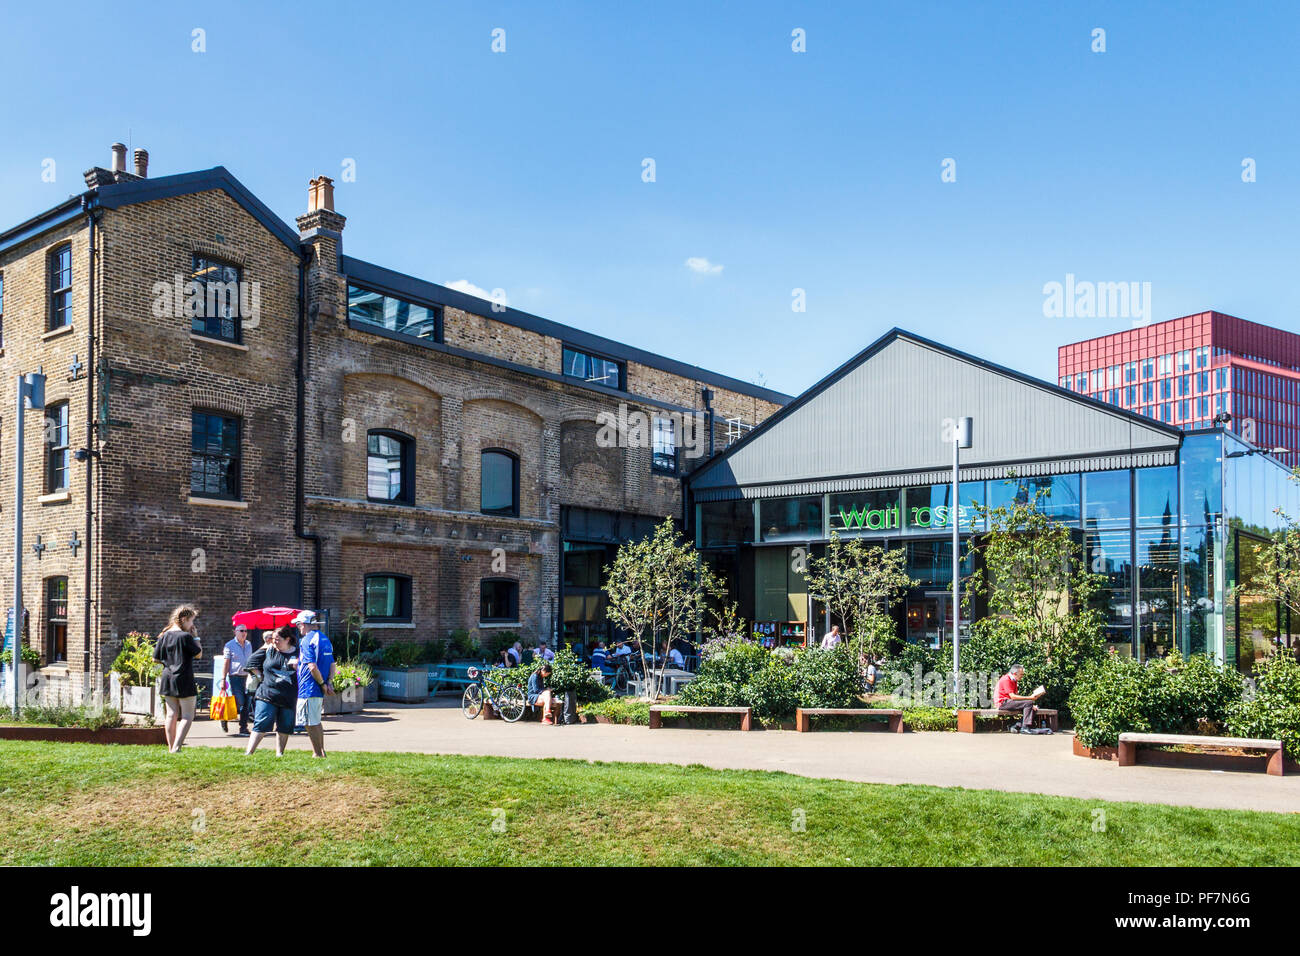 Waitrose supermaket and other recently renovated buildings at Goods Way and Granary Square, King's Cross, London, UK, 2018 - Stock Image